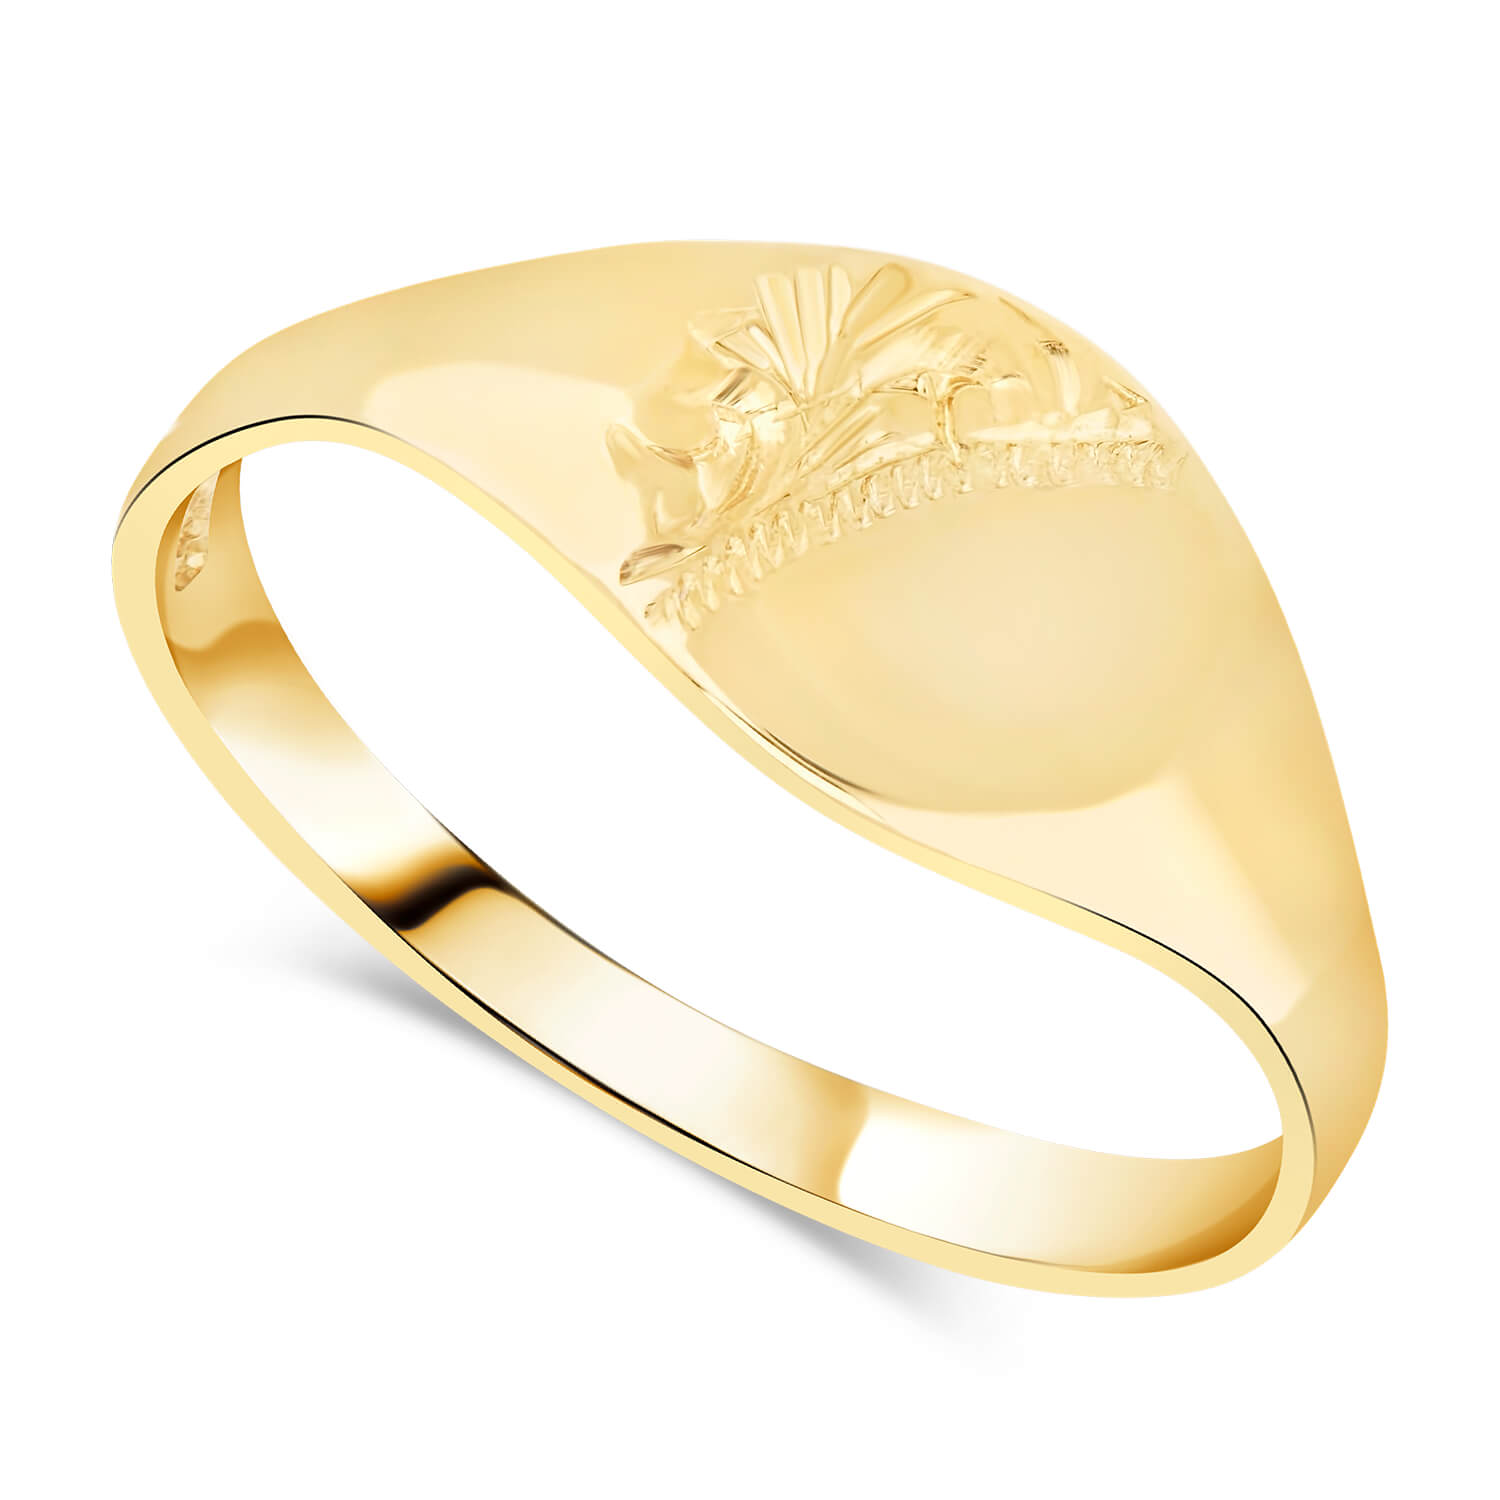 Girl's 9ct gold signet ring